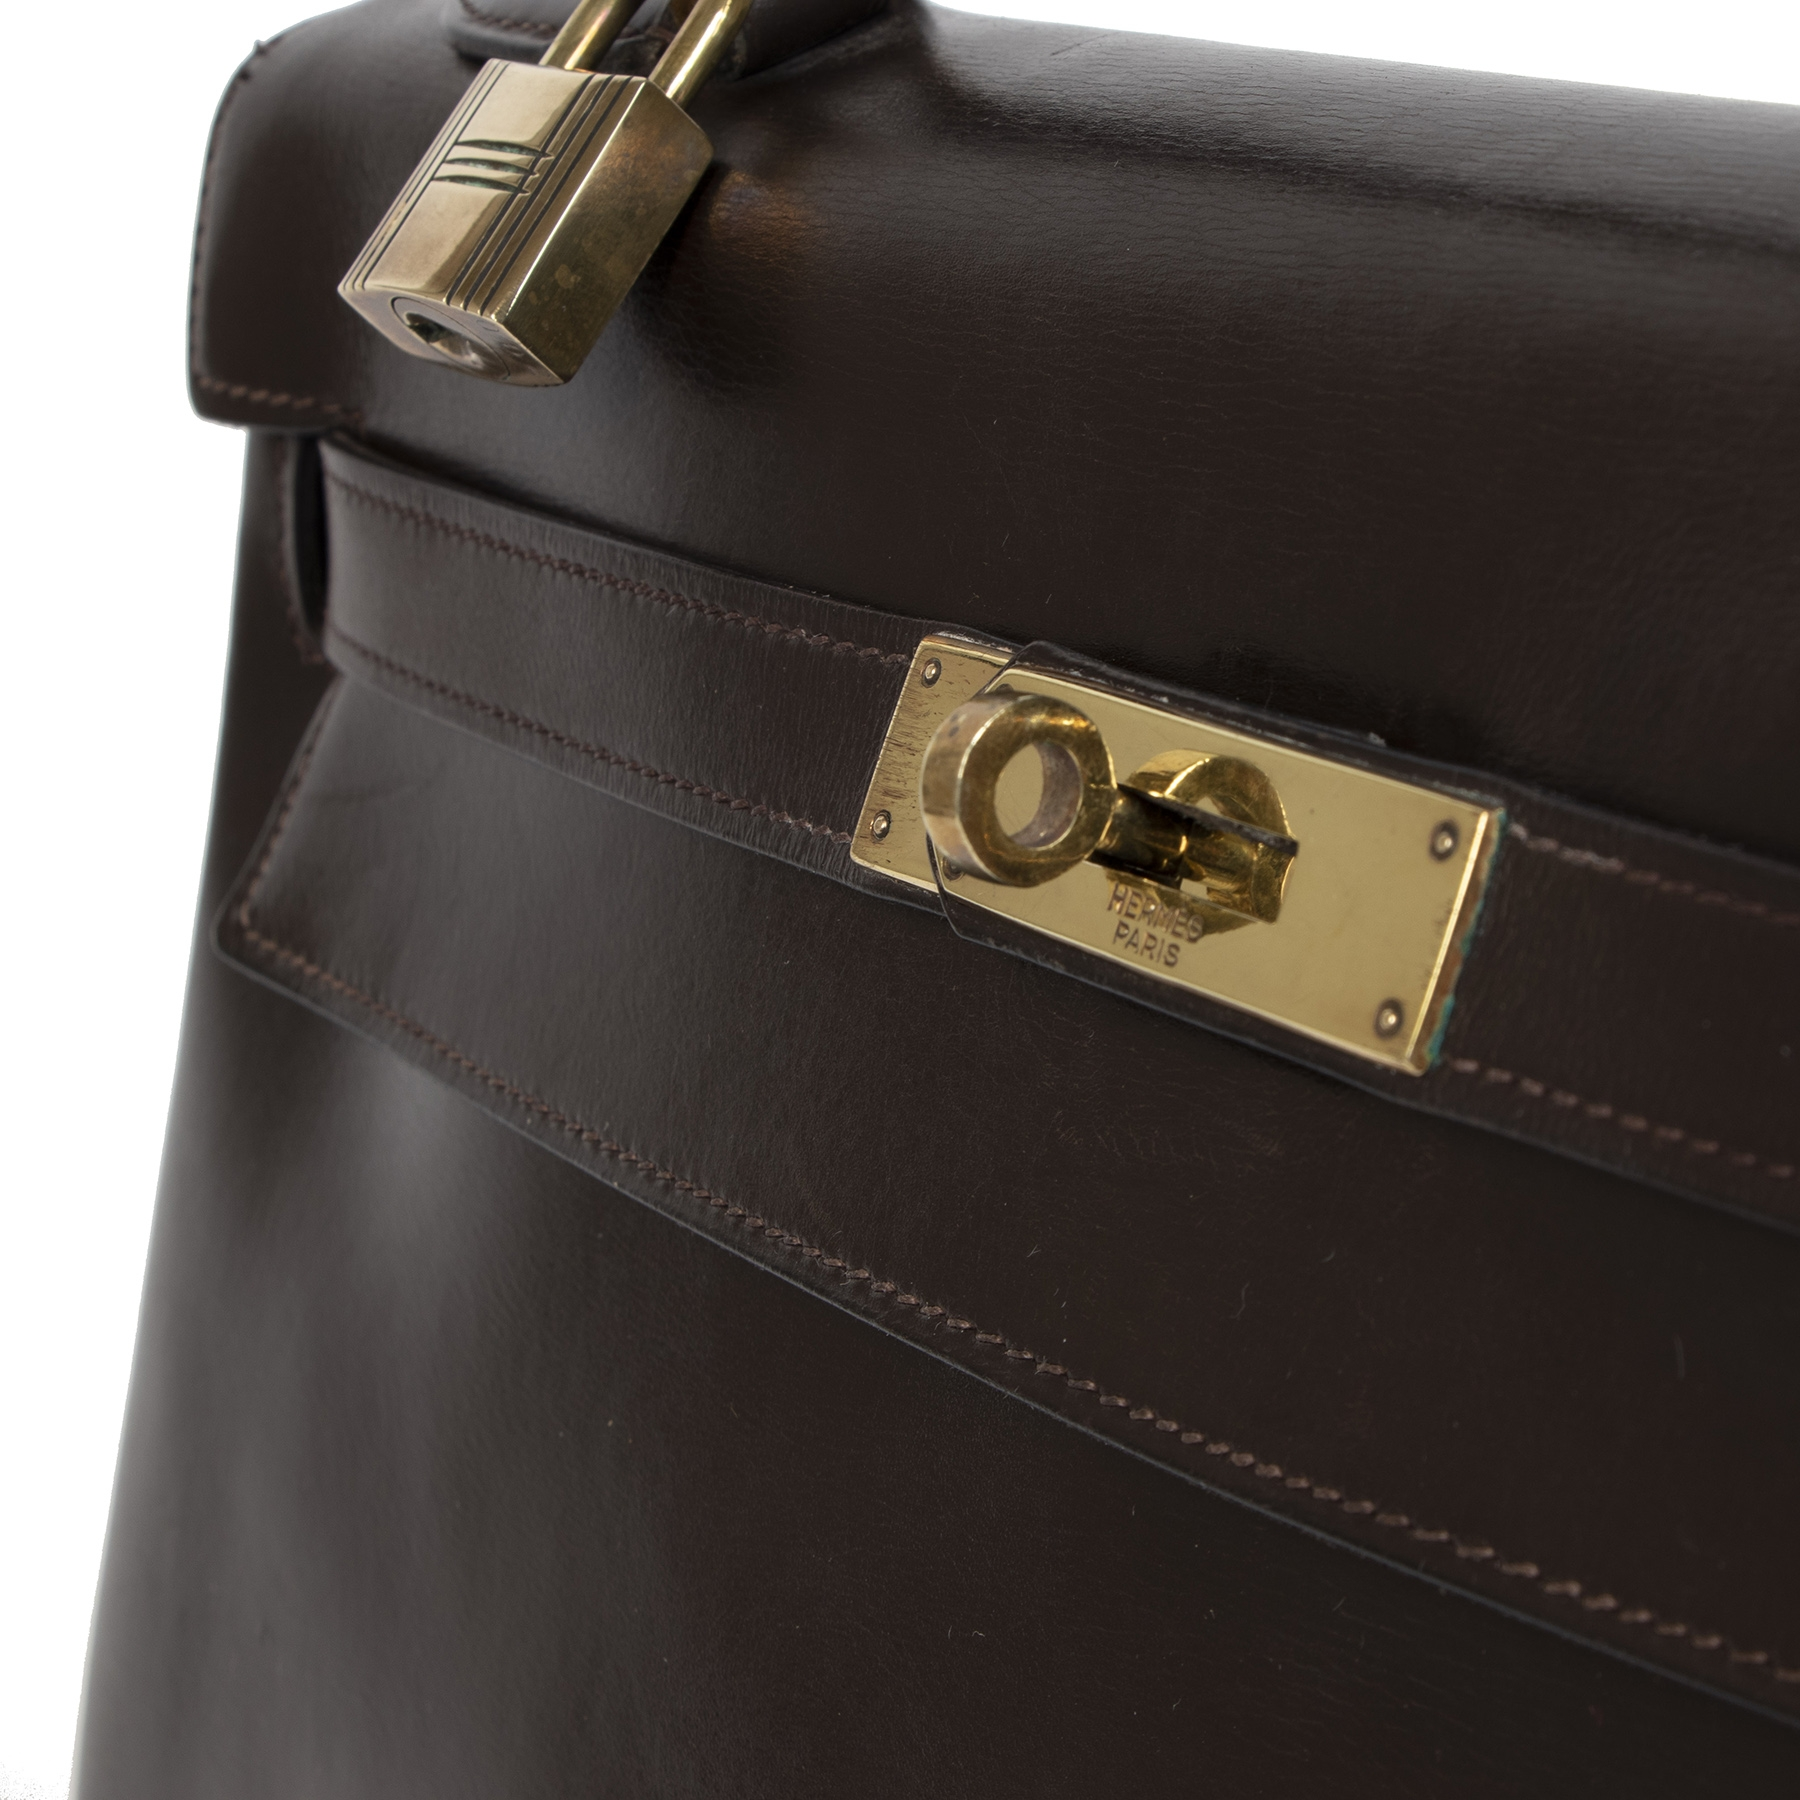 Hermès Kelly 32 Brown Boxcalf Leather GHW Bag pour le meilleur prix chez Labellov